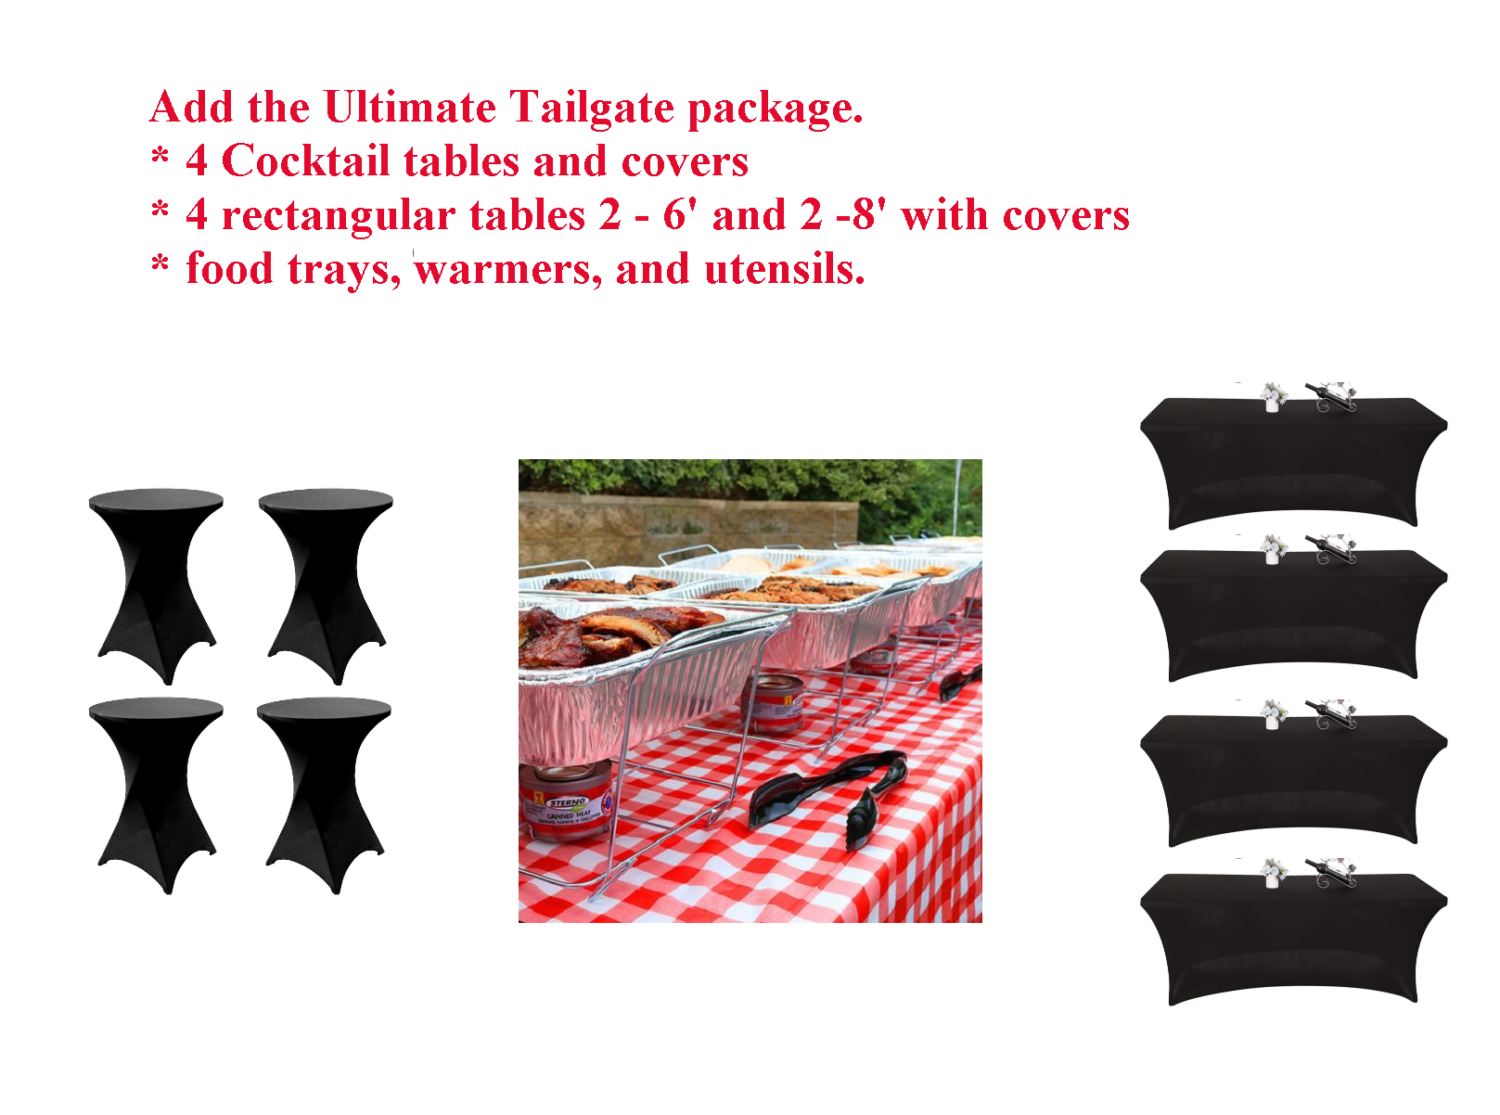 ultimatetailgate_info